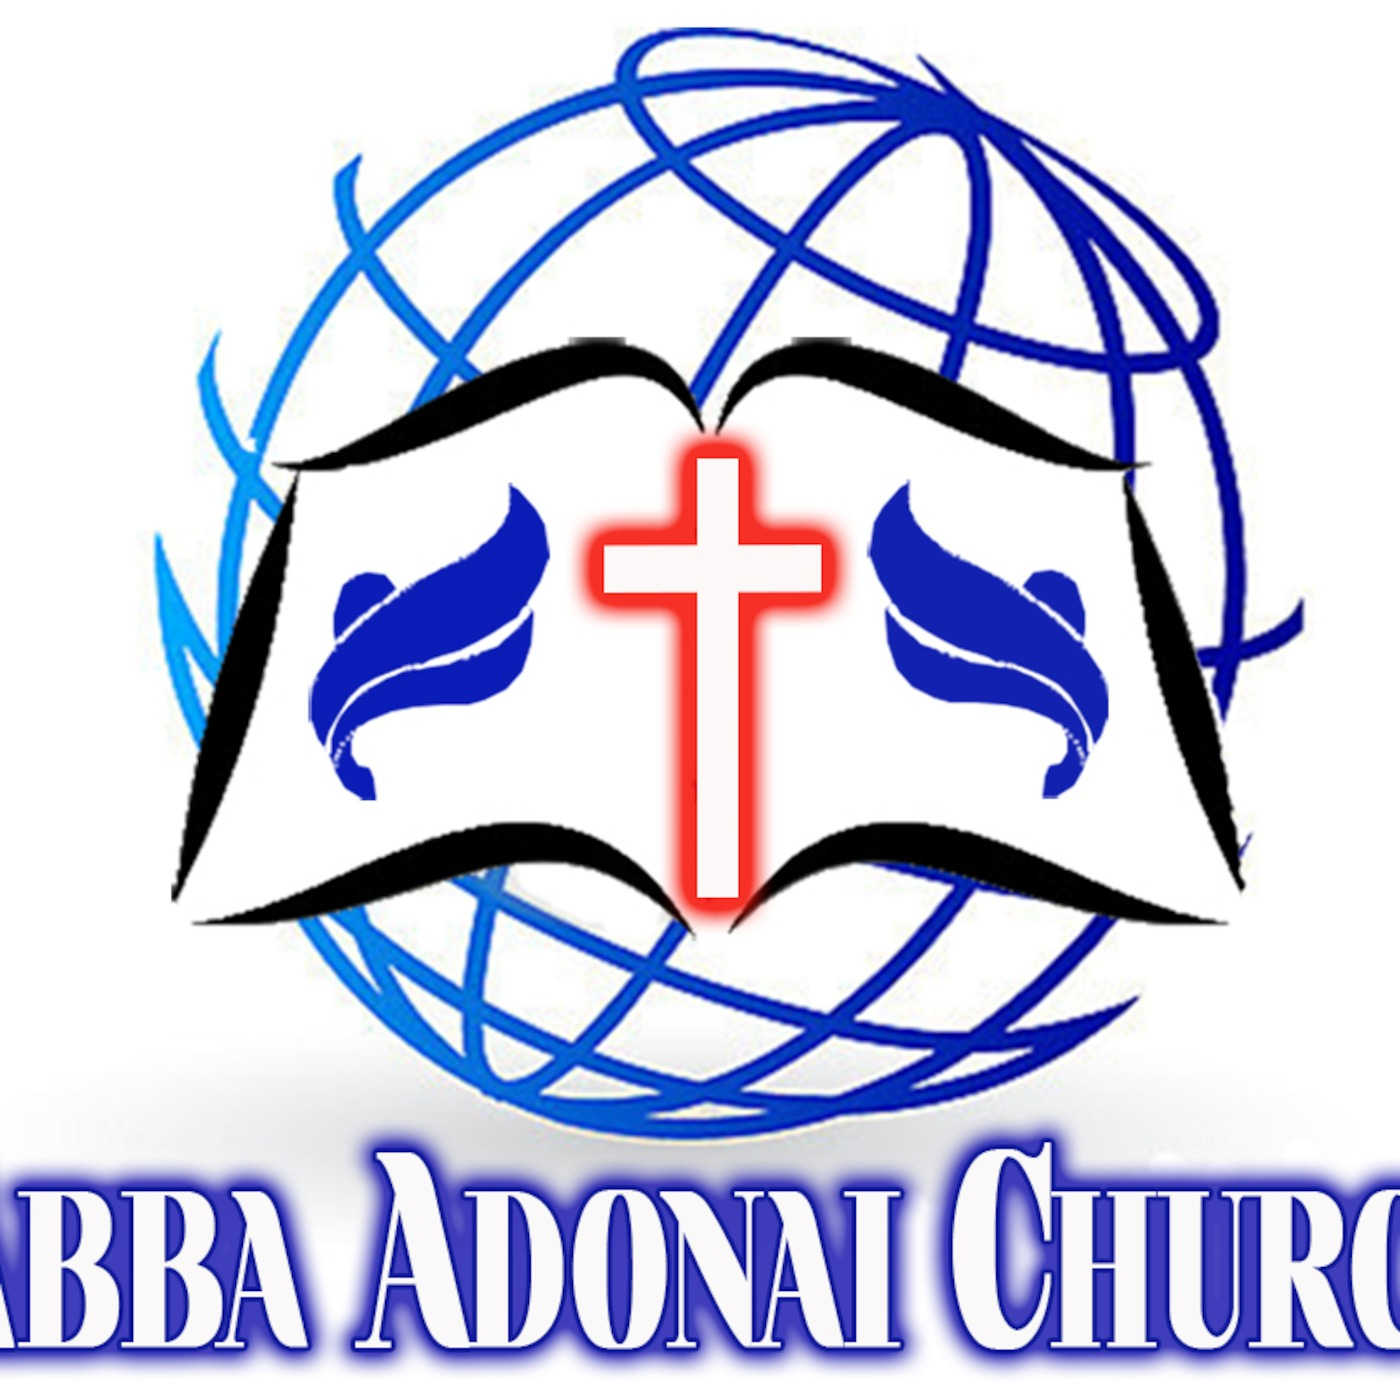 Abba Adonai Church